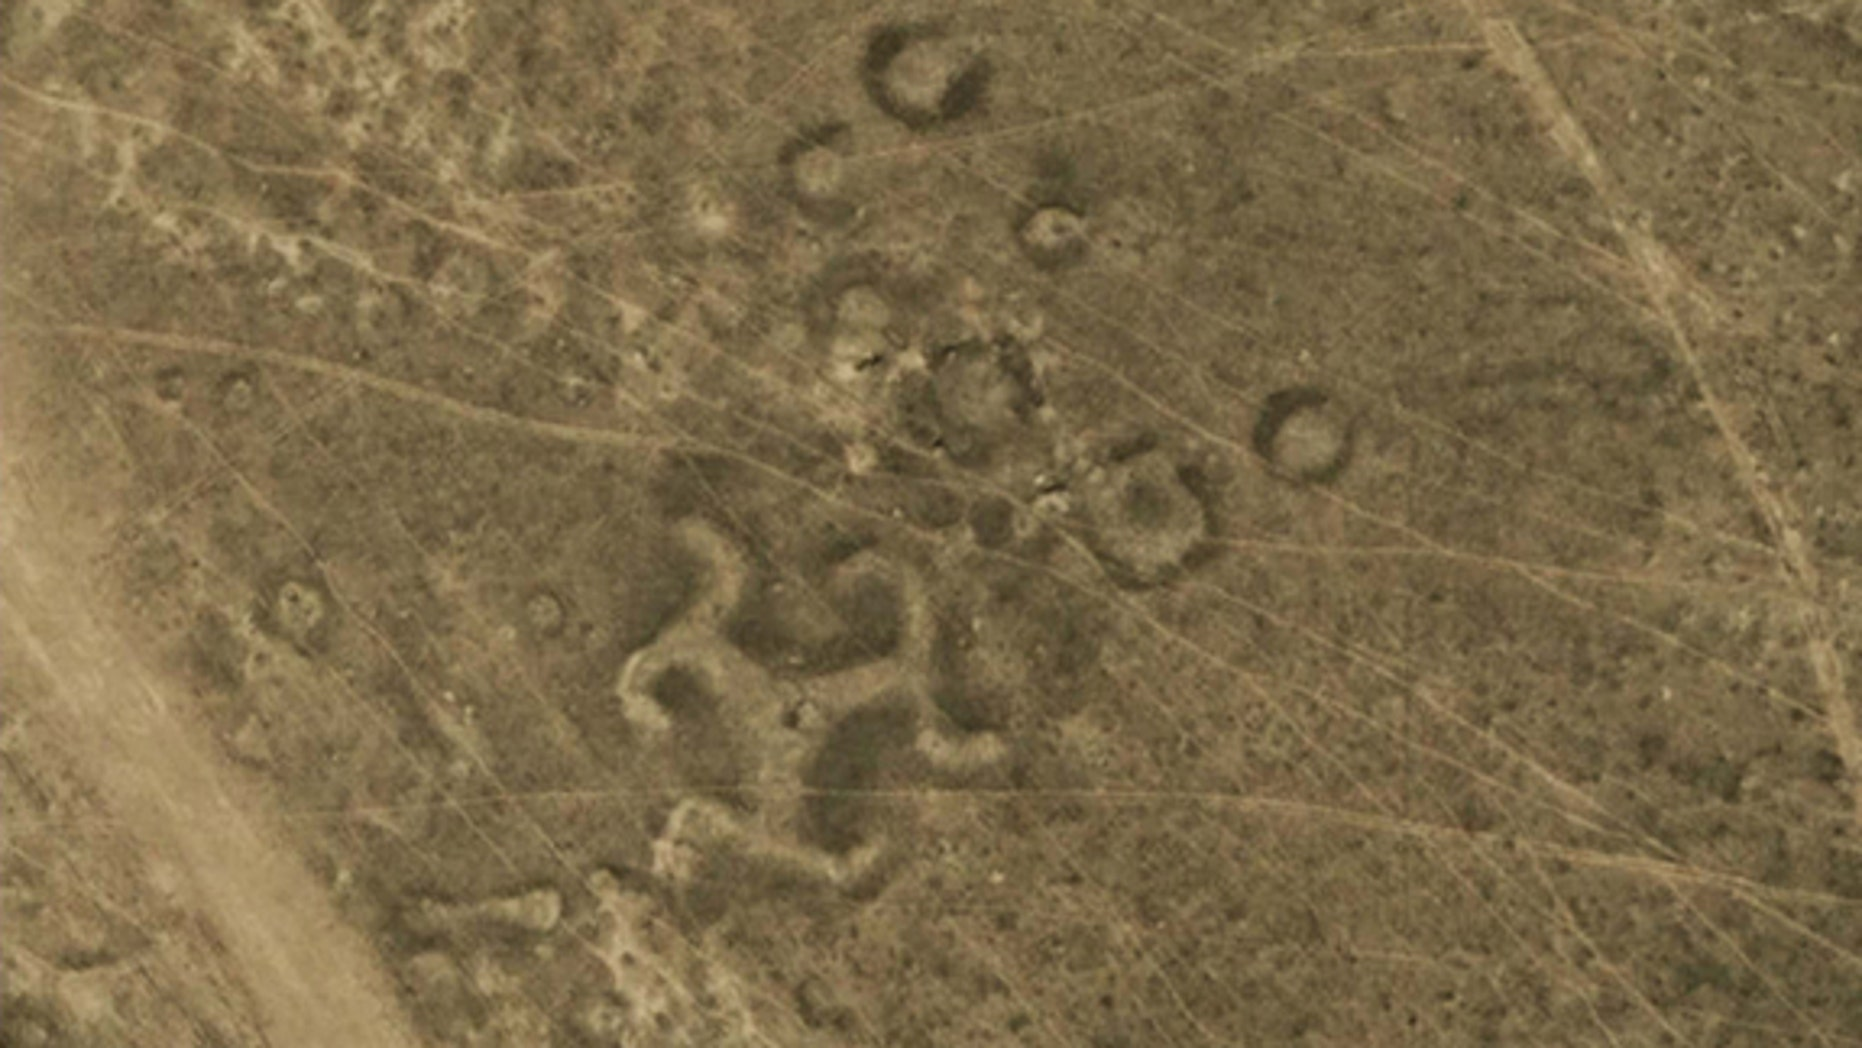 More than 50 geoglyphs, including one shaped like a swastika, have been discovered in northern Kazakhstan.